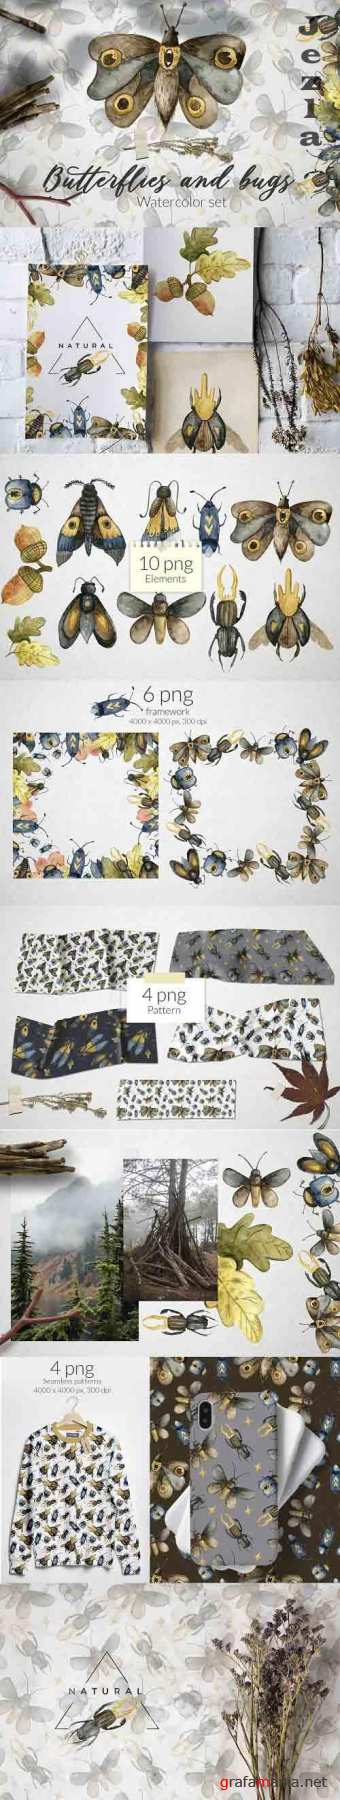 Butterflies and bugs Watercolor set - 5823199